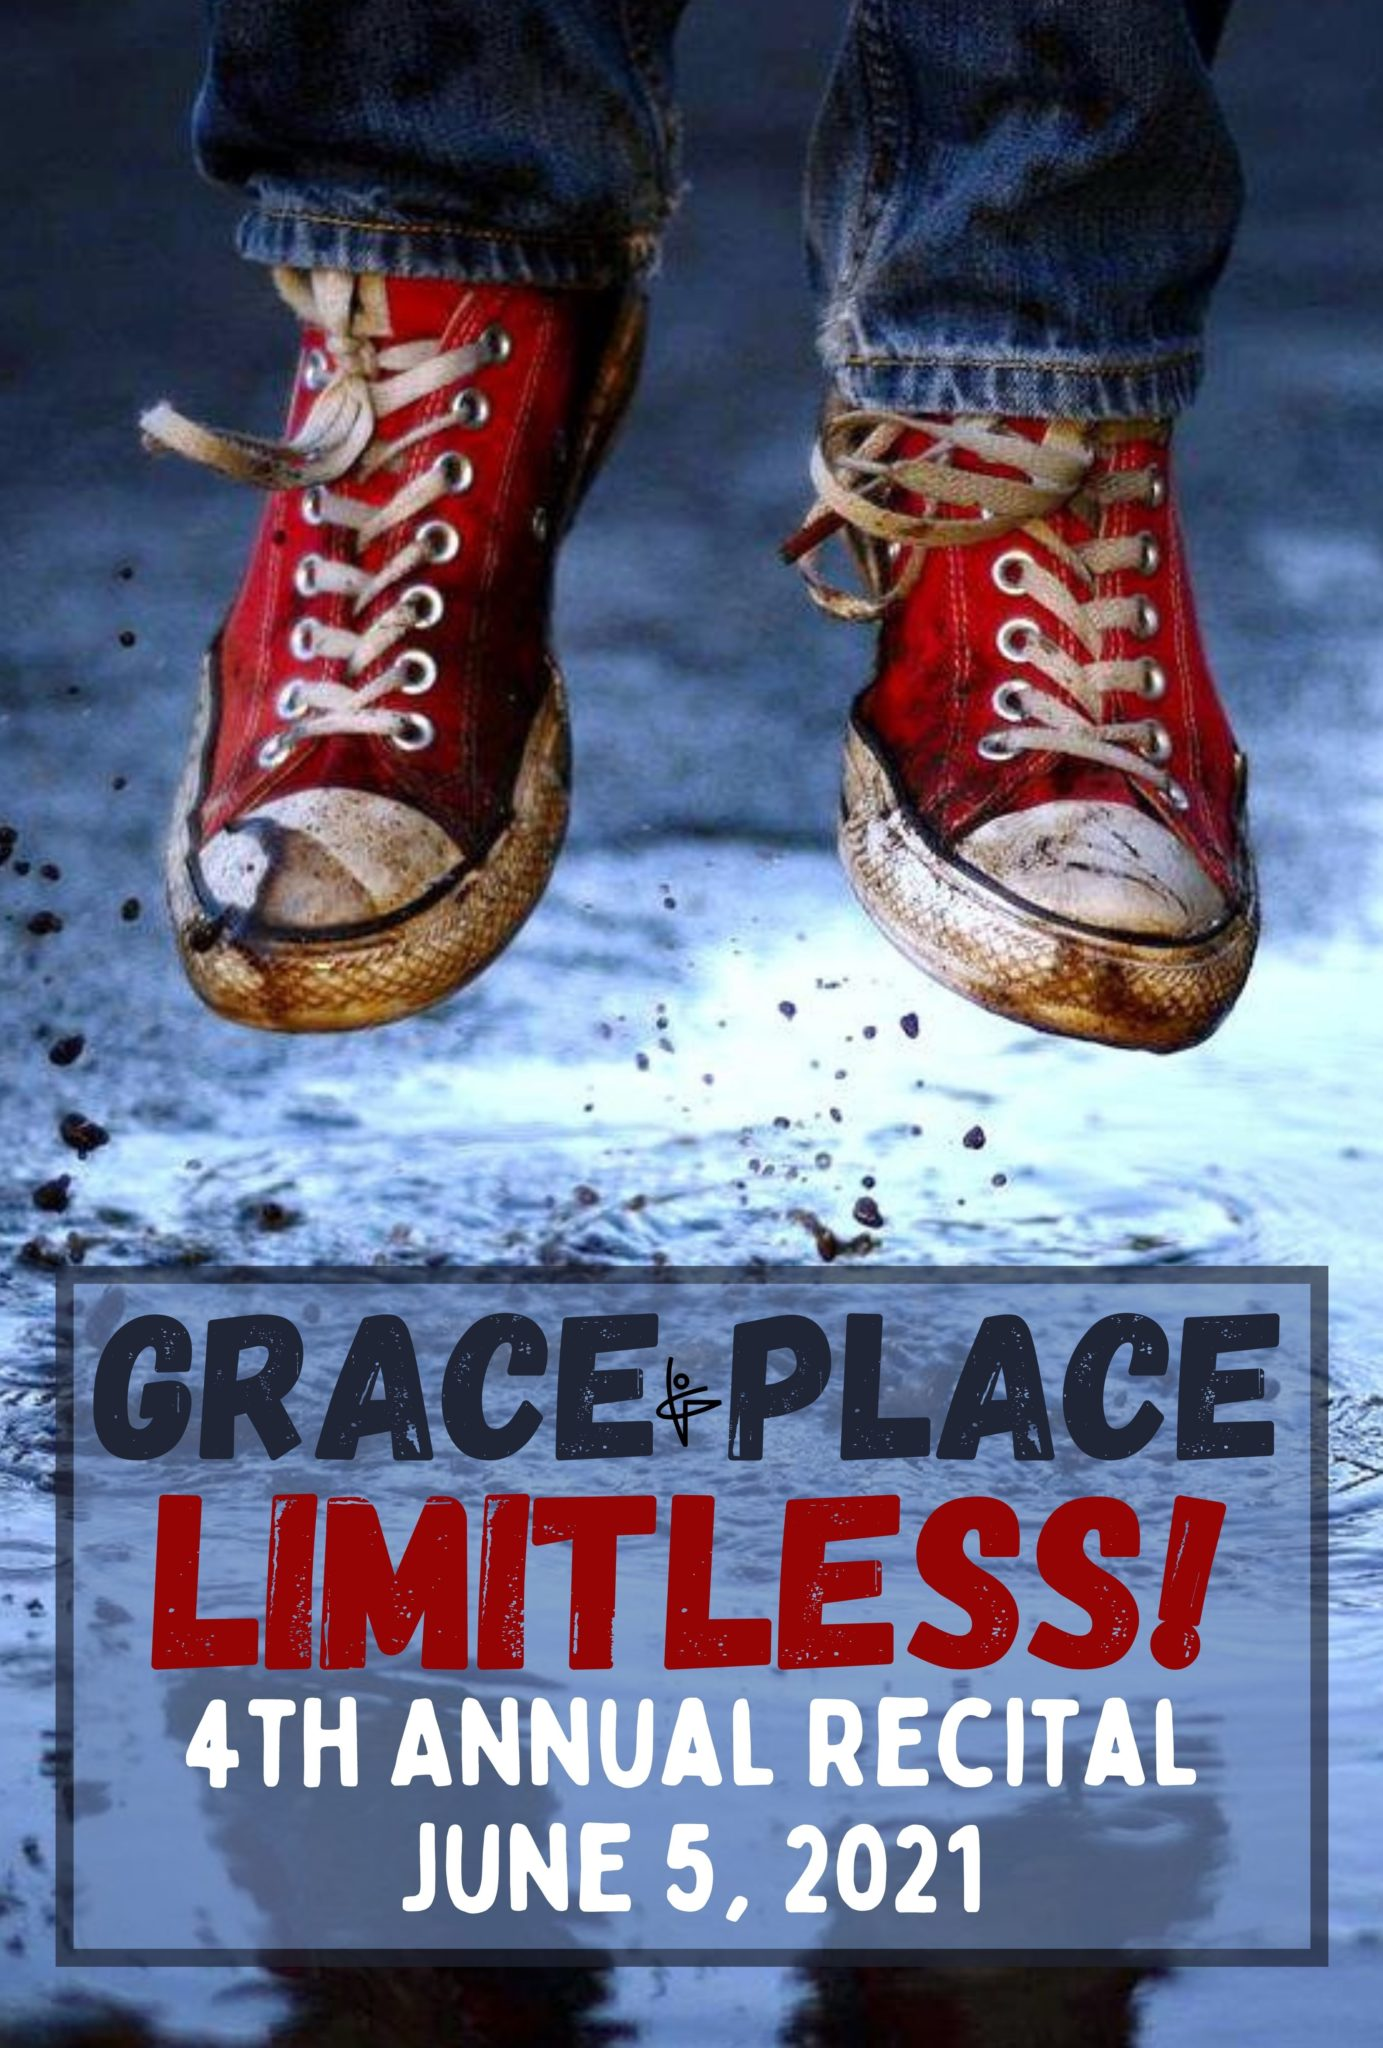 Grace Place 4th Annual Recital...Limitless!